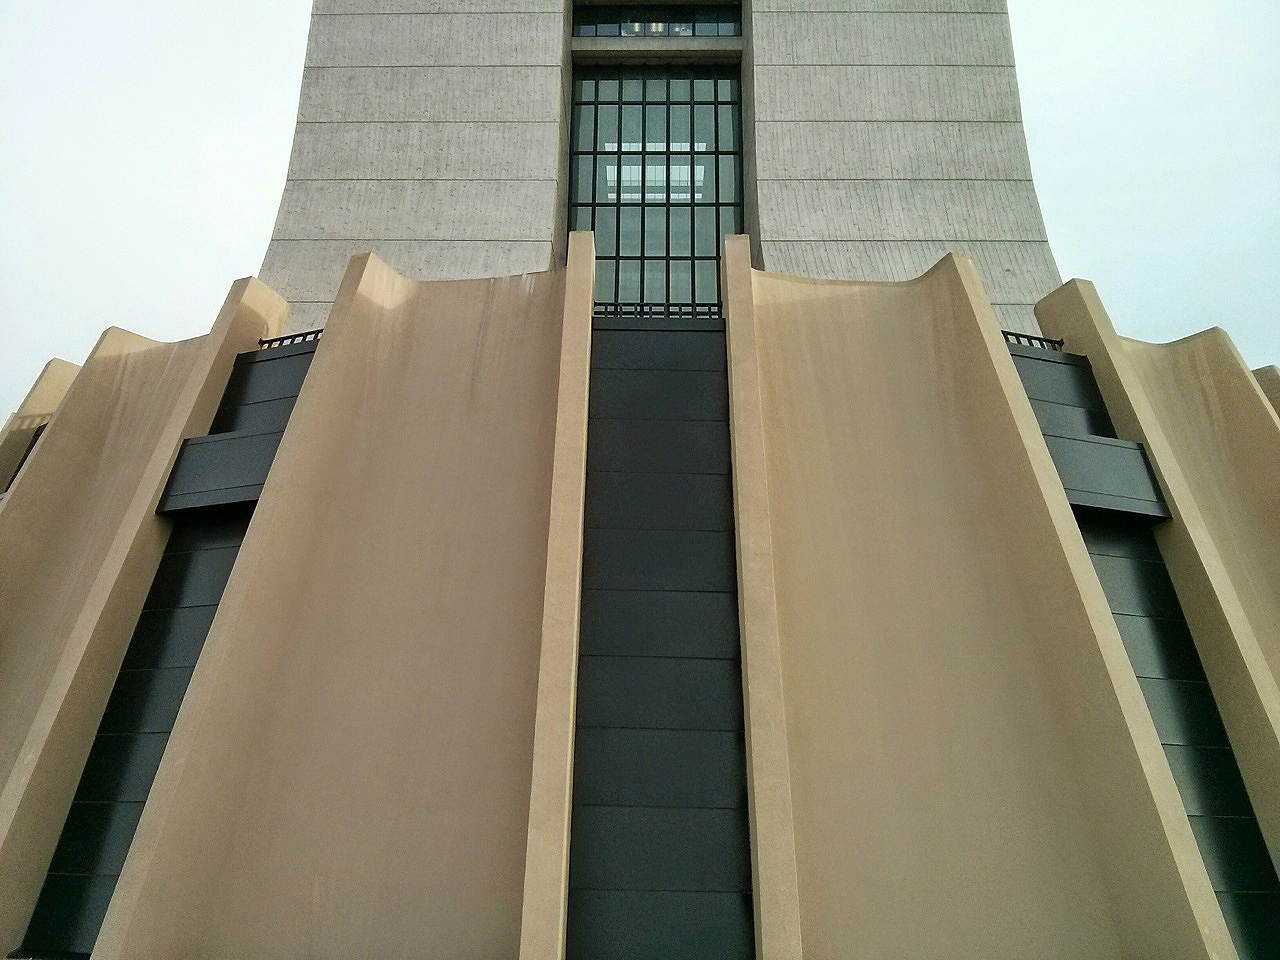 The up-close view of the south side of Wilson Hall, along with the exterior of Ramsey Auditorium, is a rarely appreciated aspect of the building. Photo: Georgia Schwender, OC